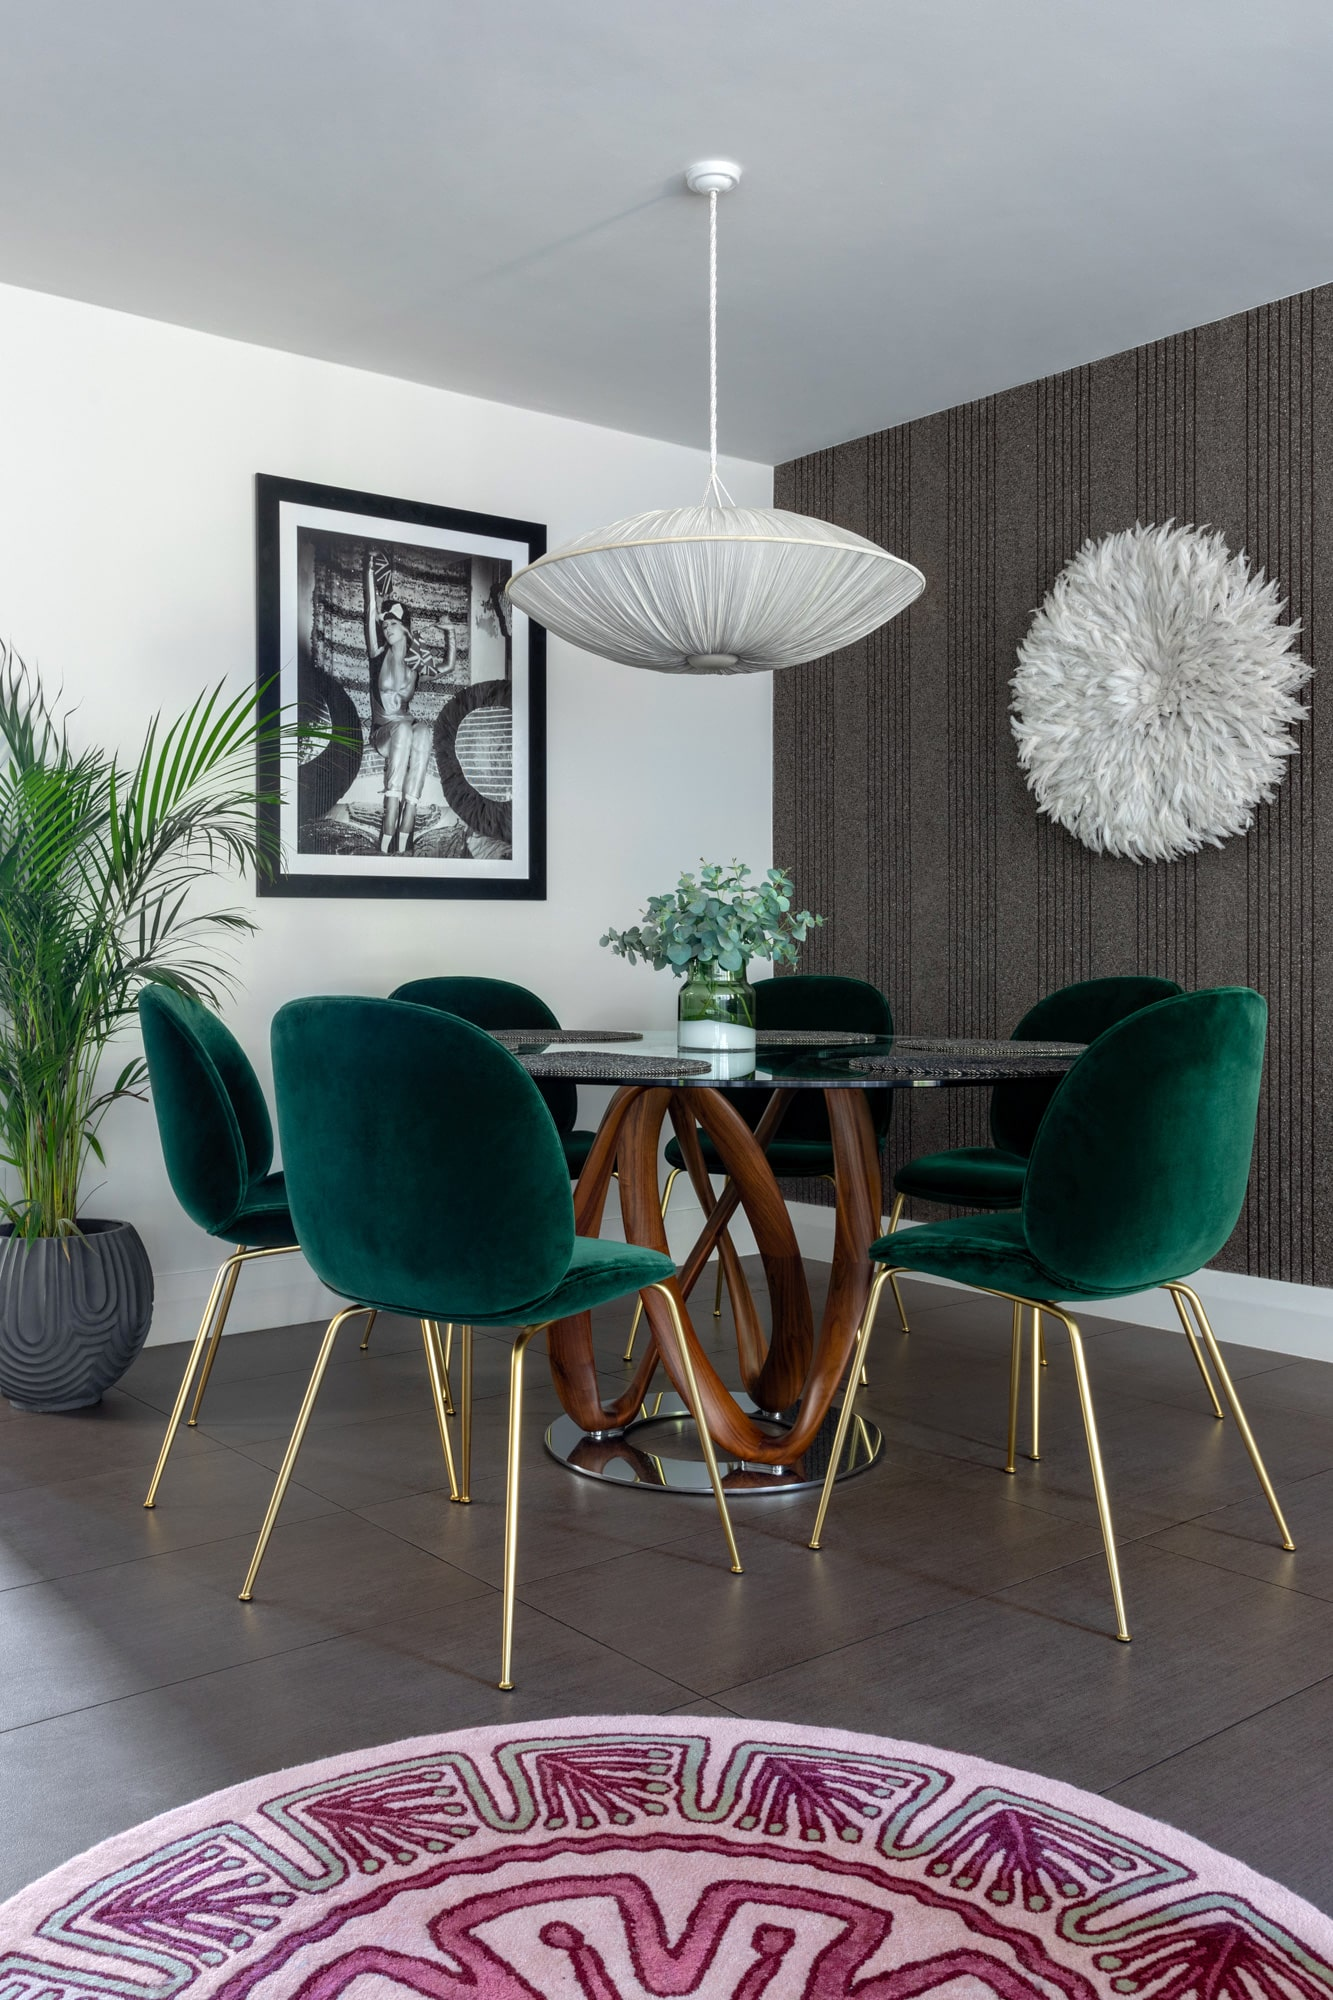 Interior design photo: living room: round table with a glass top, green velvet chairs; black and white photo of a woman on the wall; grey feature wall with hanging round white accessory made of feathers